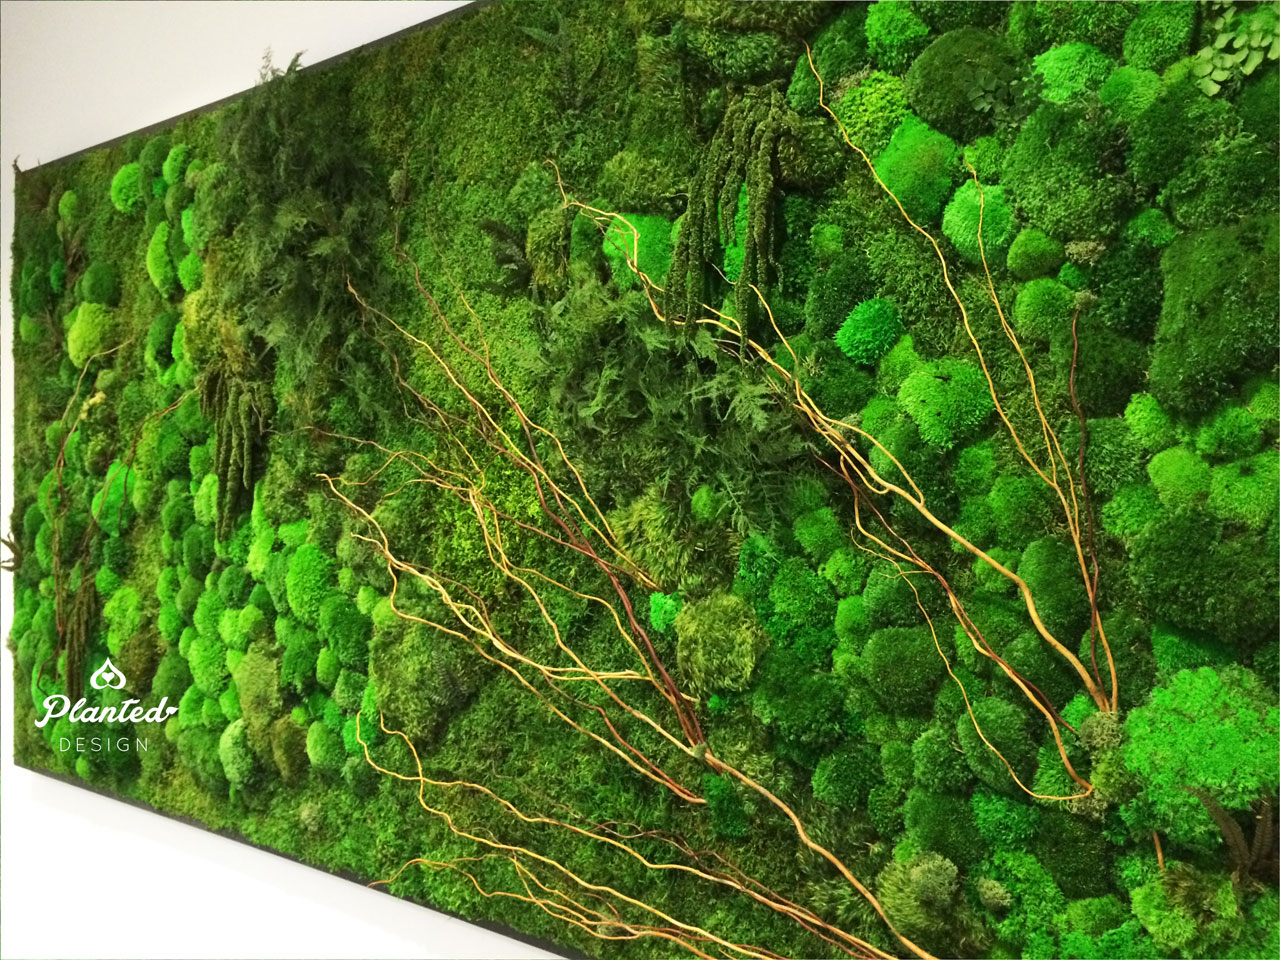 PlantedDesign-Moss-Wall-SF-InsideSource-11.jpg